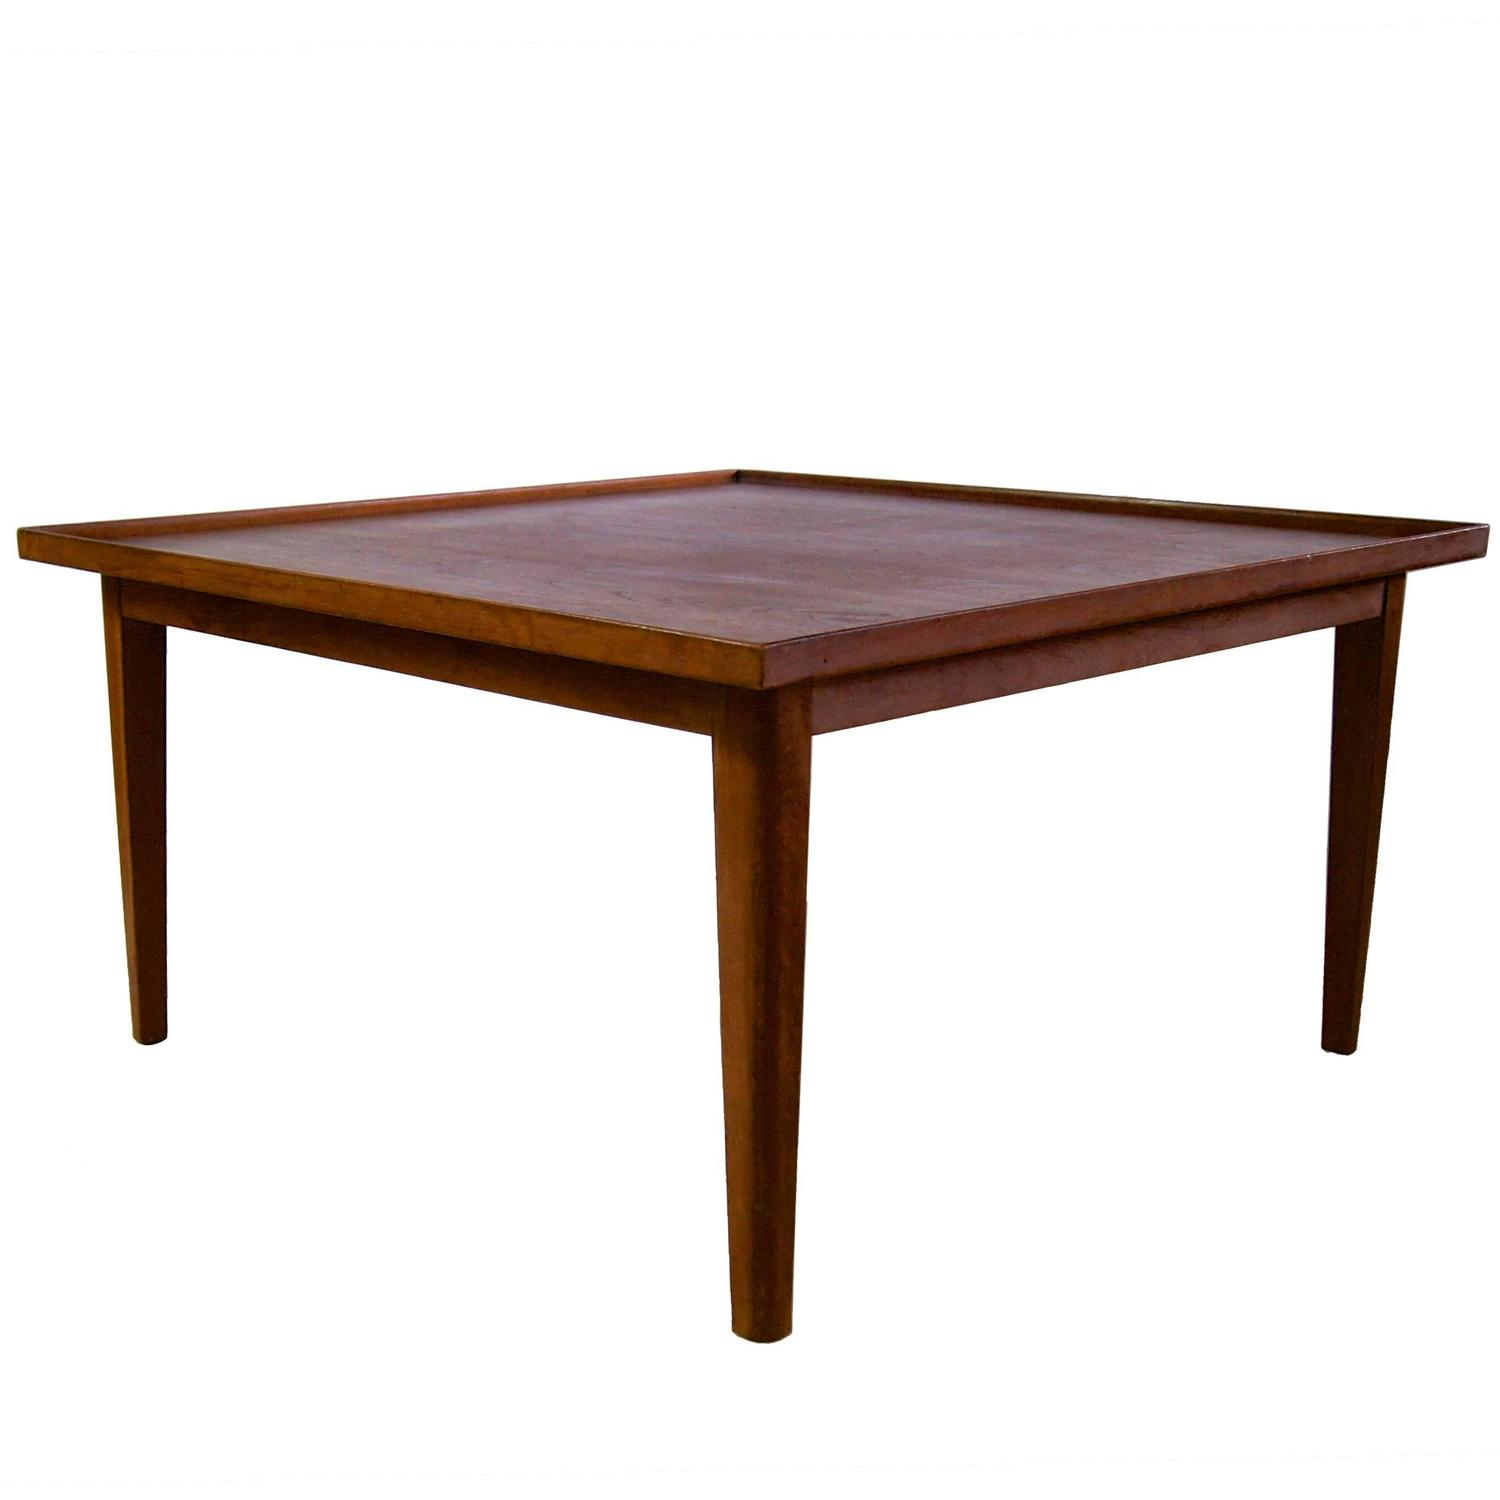 Low Tables For Sale Scandinavian Low Table With Raised Edges For Sale At 1stdibs